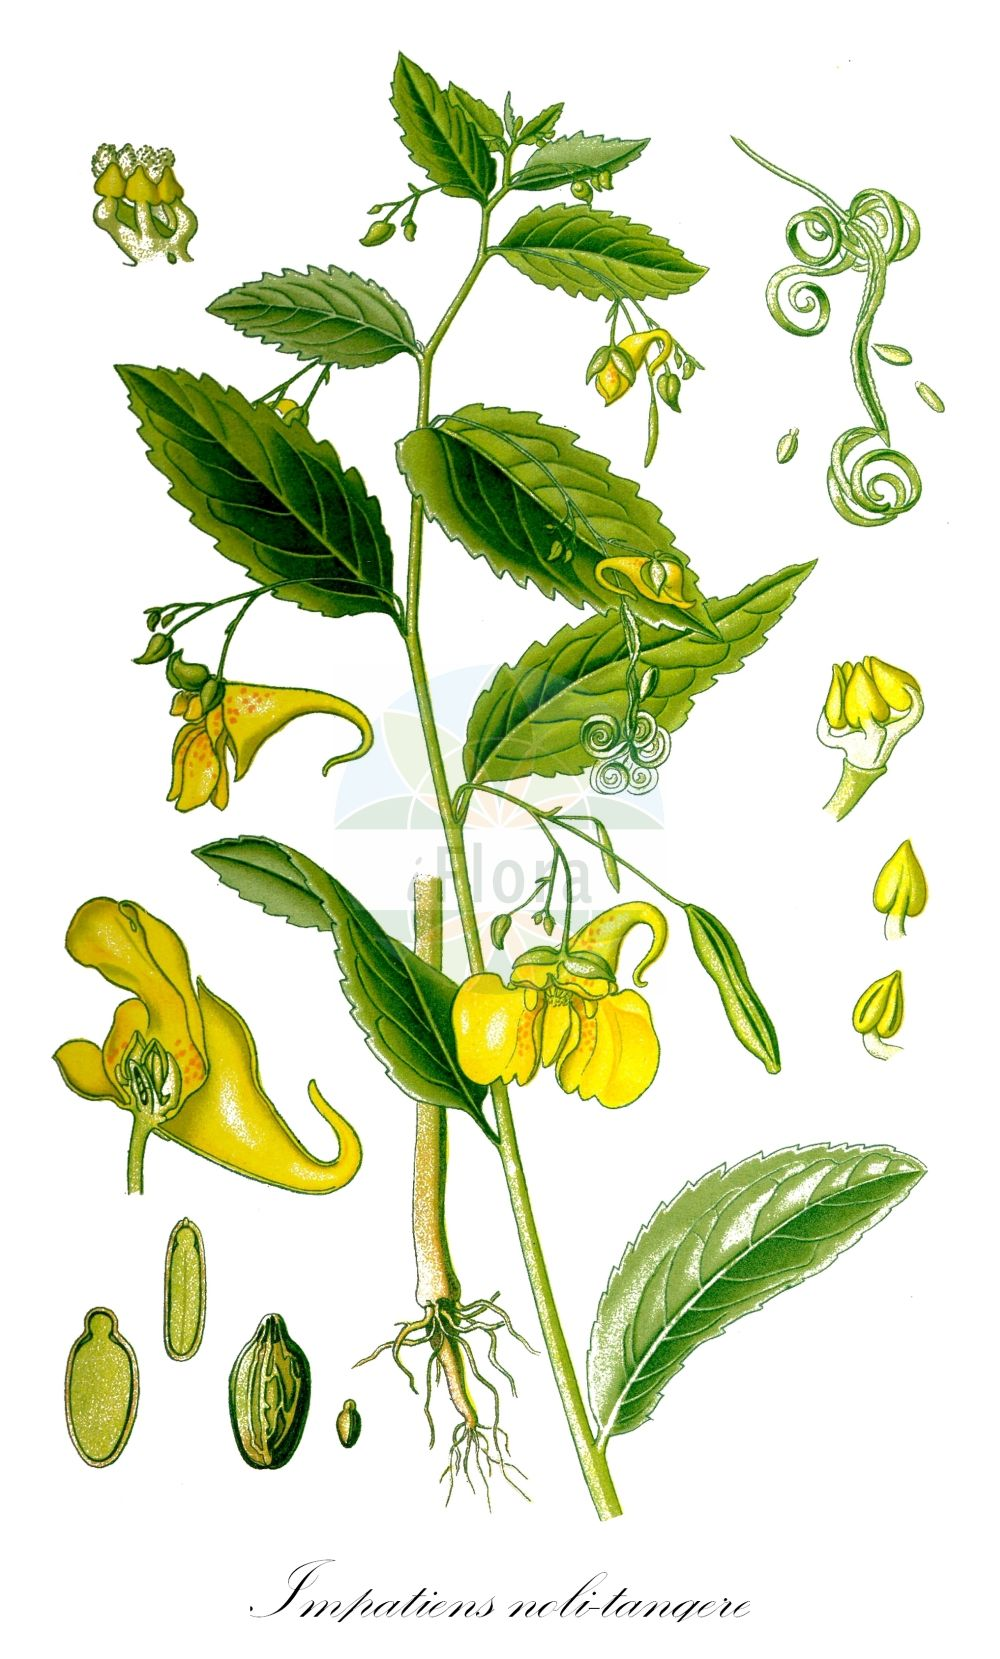 Historische Abbildung von Impatiens noli-tangere (Grosses Springkraut - Touch-me-Not Balsam). Das Bild zeigt Blatt, Bluete, Frucht und Same. ---- Historical Drawing of Impatiens noli-tangere (Grosses Springkraut - Touch-me-Not Balsam).The image is showing leaf, flower, fruit and seed.(Impatiens noli-tangere,Grosses Springkraut,Touch-me-Not Balsam,Echtes Springkraut,Ruehr-mich-nicht-an,Wald-Springkraut,Touch-me-Not,Western Touch-me-Not,Wild Balsam,Yellow Balsam,Impatiens,Springkraut,Touch-me-Not,Balsaminaceae,Springkrautgewaechse,Balsam family,Blatt,Bluete,Frucht,Same,leaf,flower,fruit,seed,Thomé (1885))